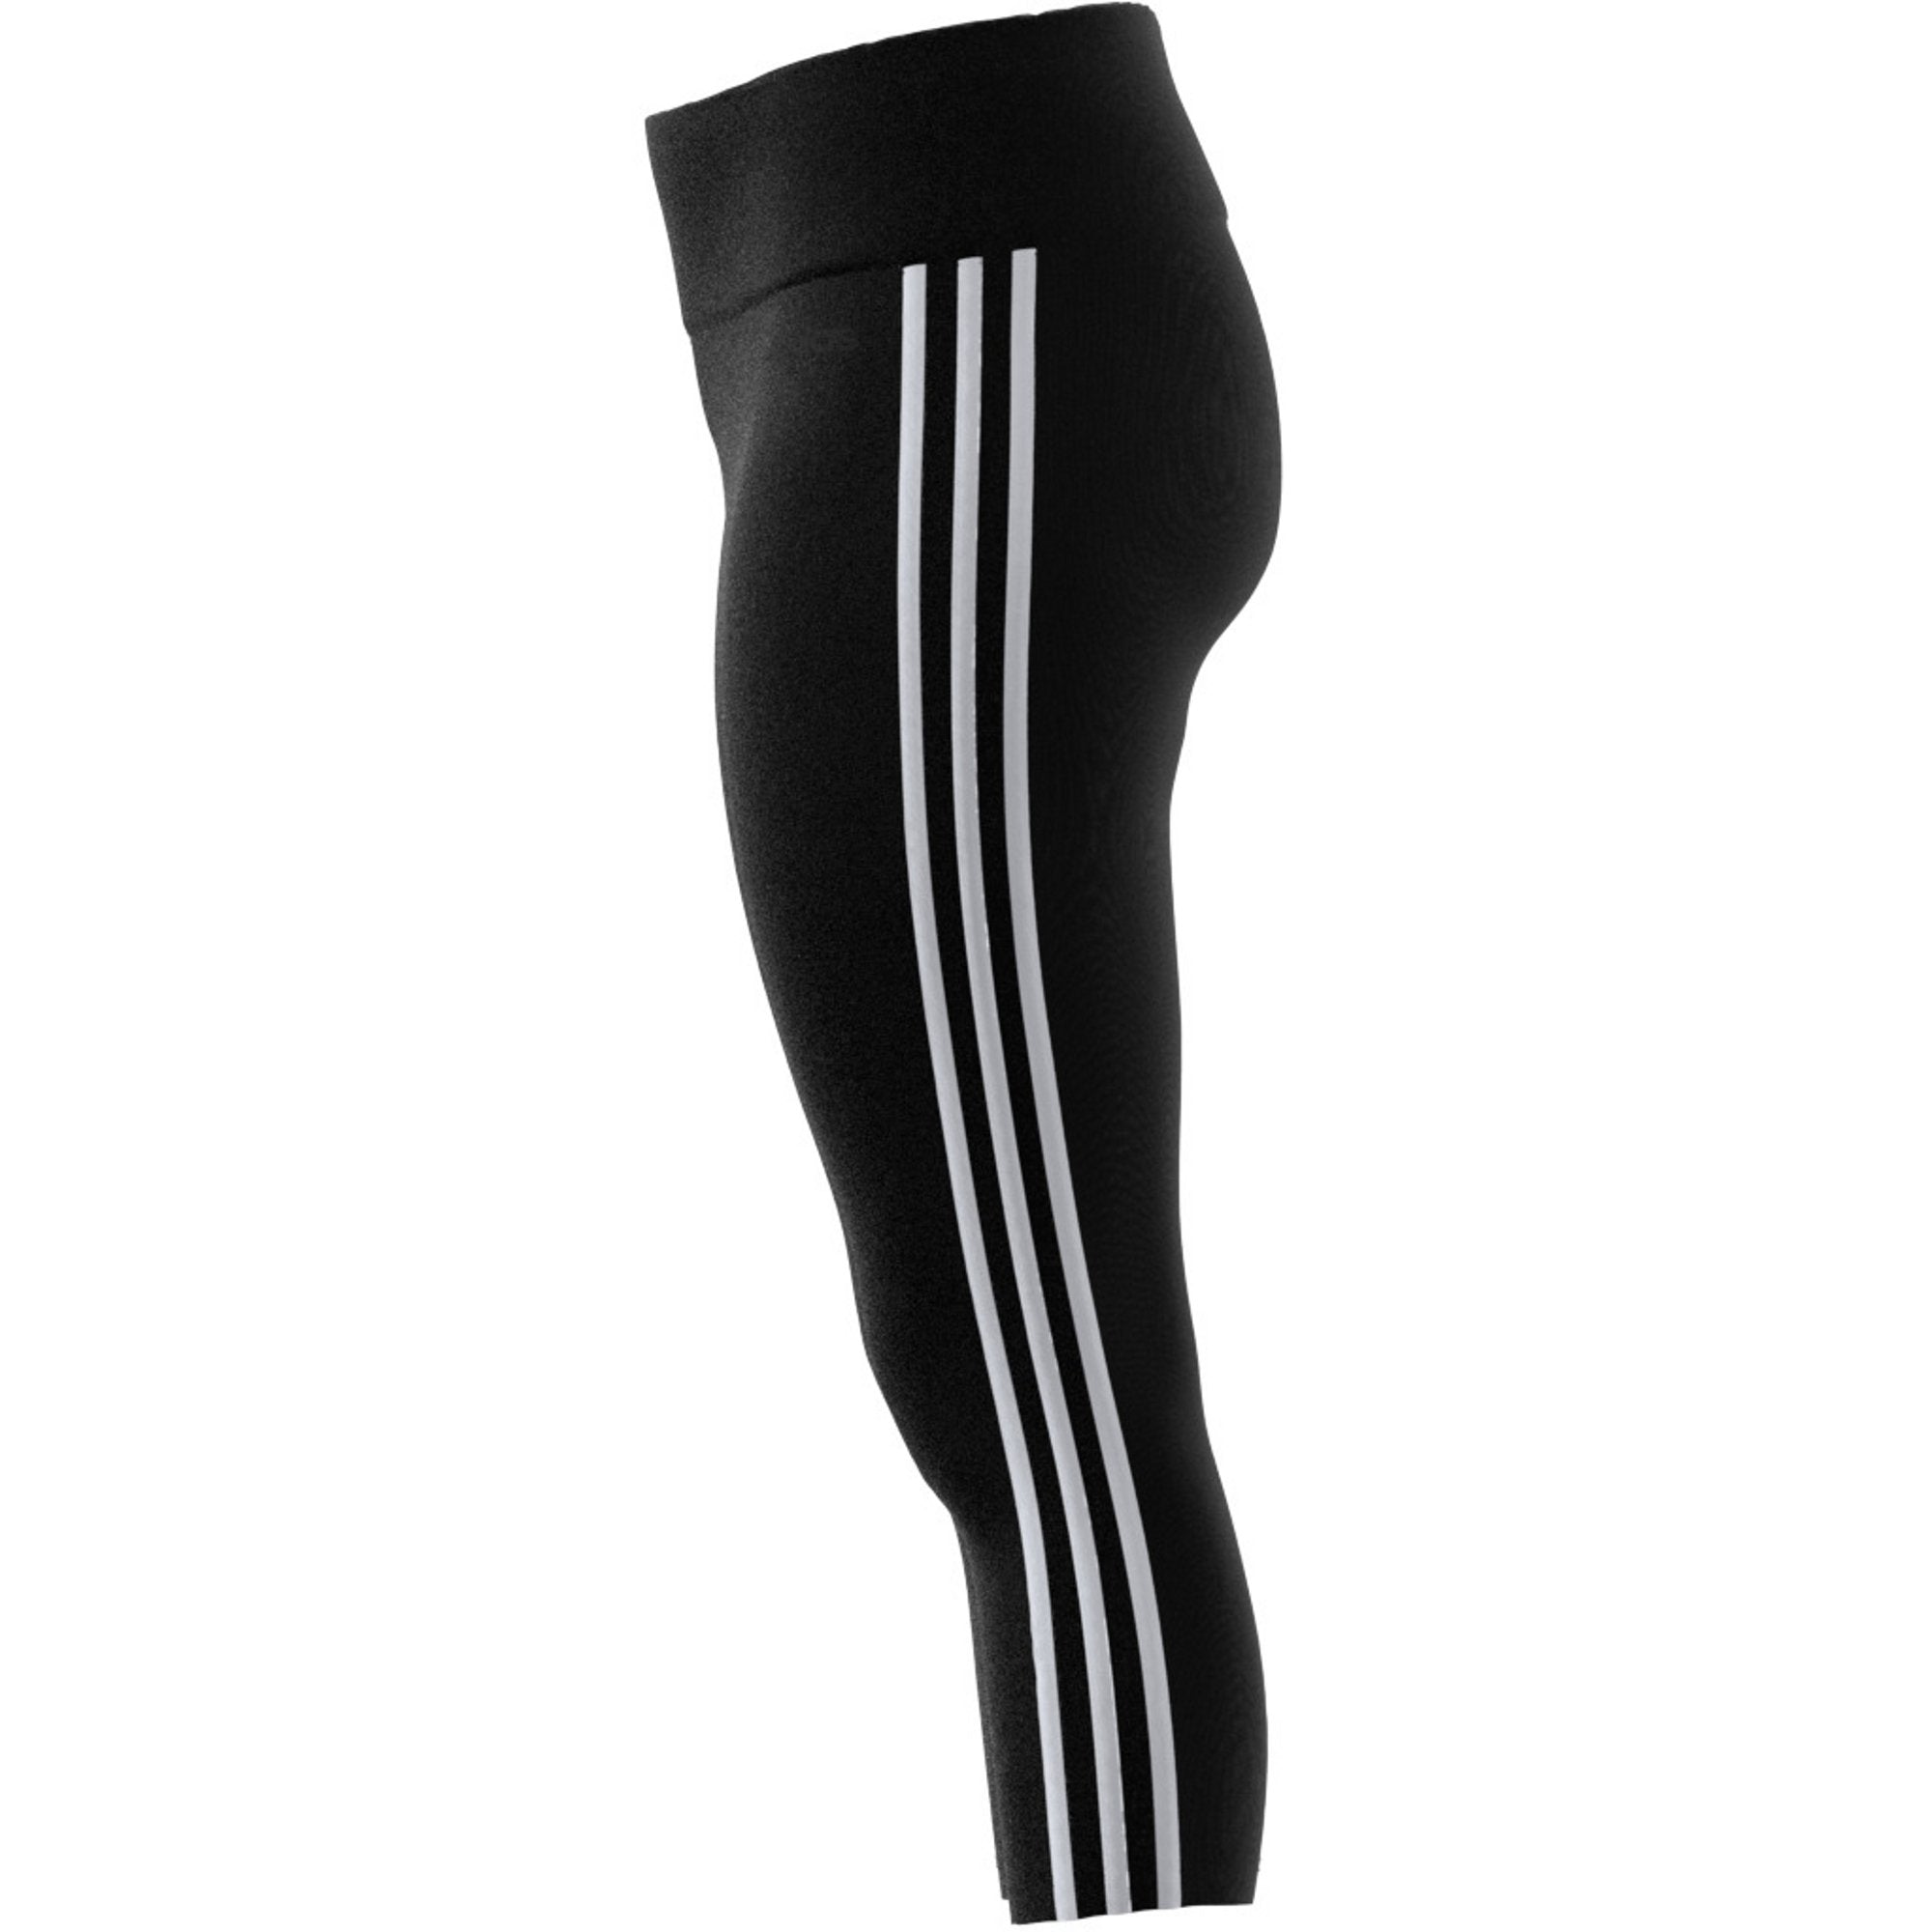 Adidas Womens Design 2 Move 3-Stripes 3/4 Tights - black/white SP-ApparelTights-Womens Adidas